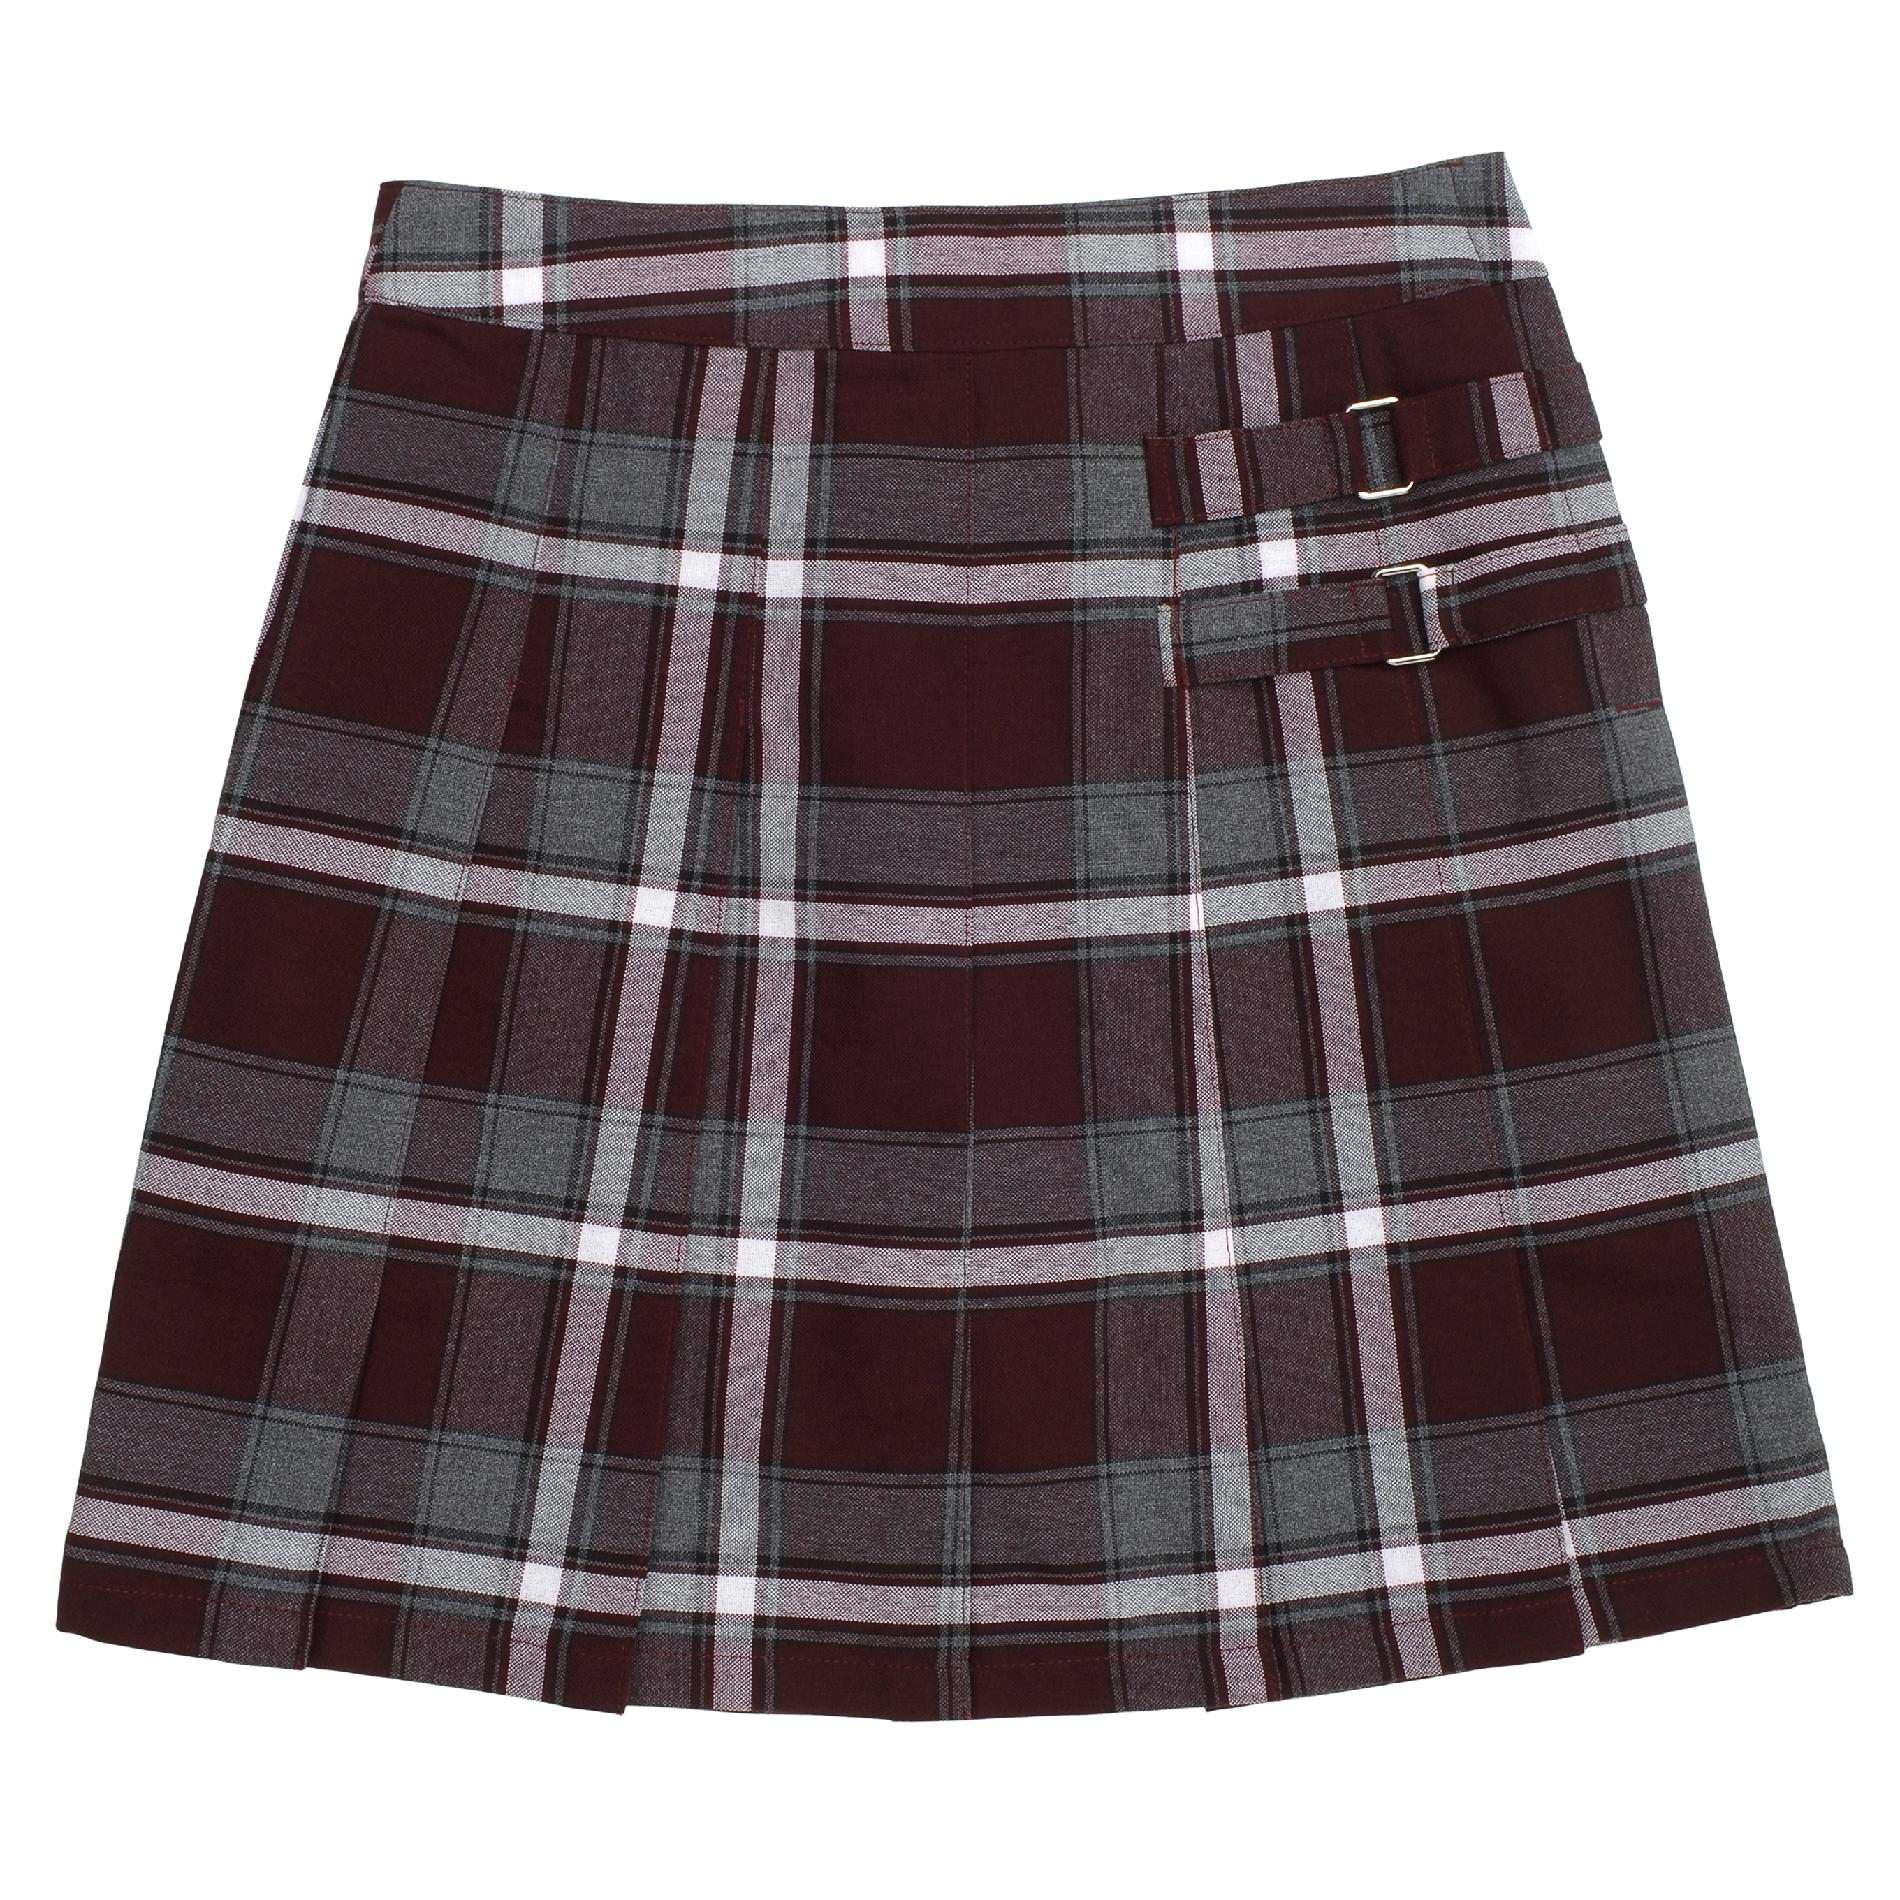 School Skirts Kmart At School By French Toast Girls Burgundy Plaid Two Tab